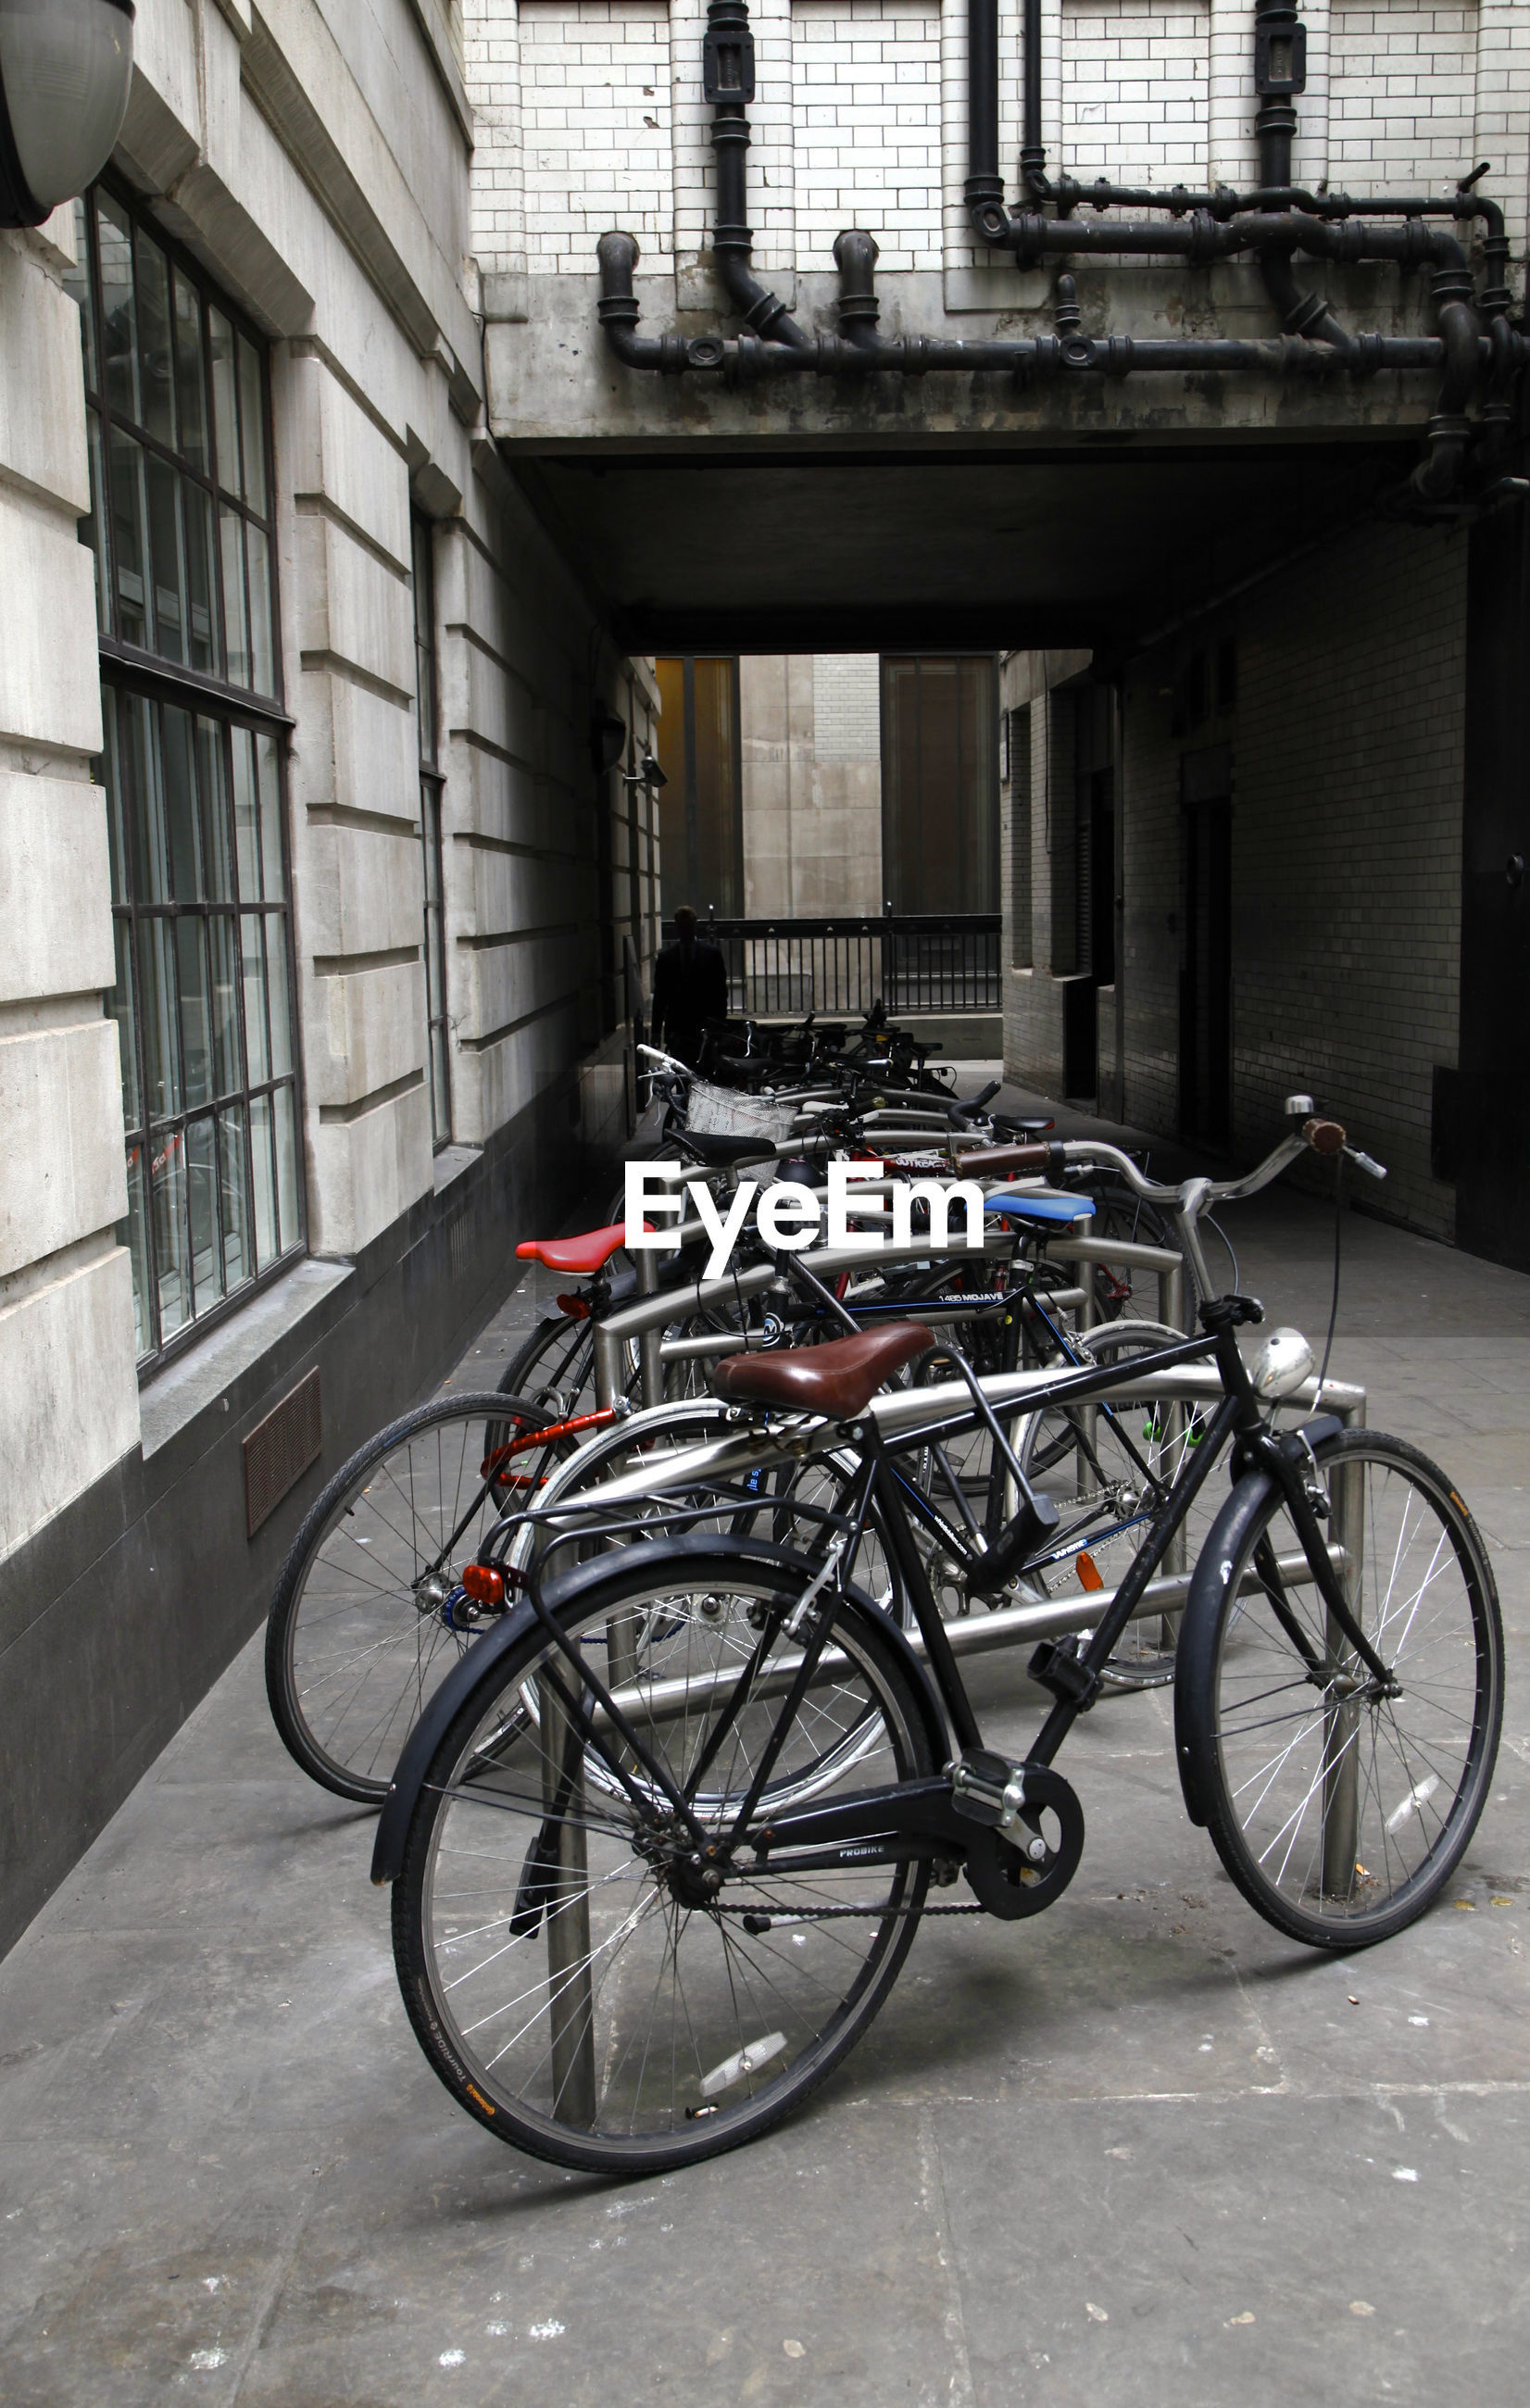 Bicycles parked on street outside building